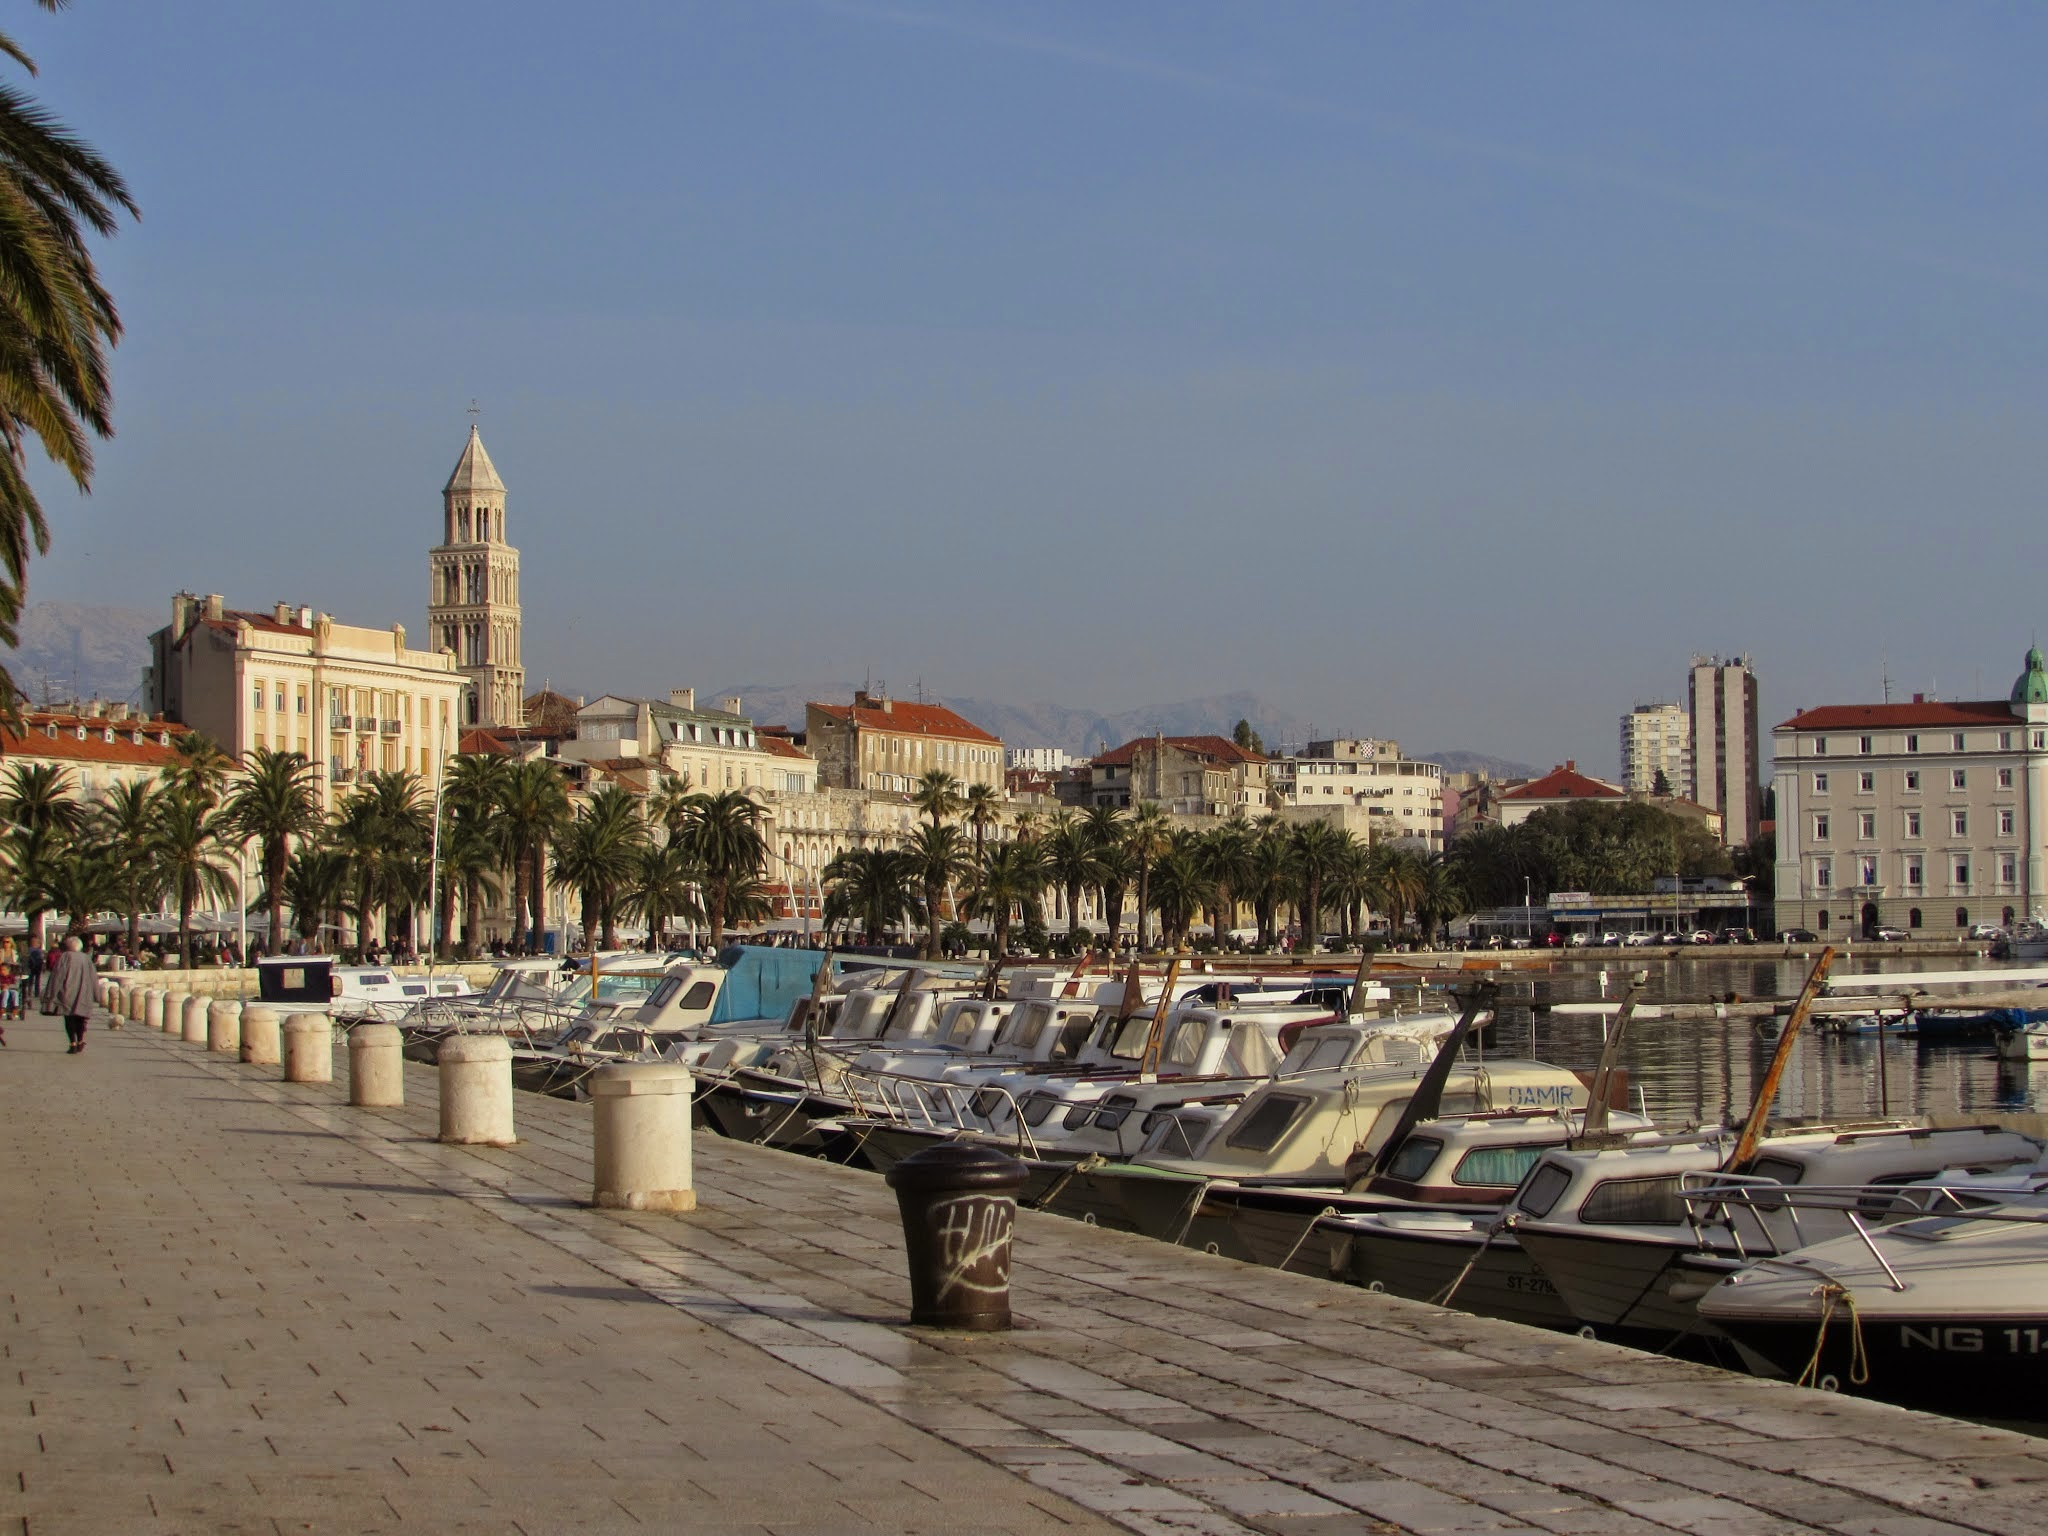 Diocletian's Palace as viewed from Split's promenade.